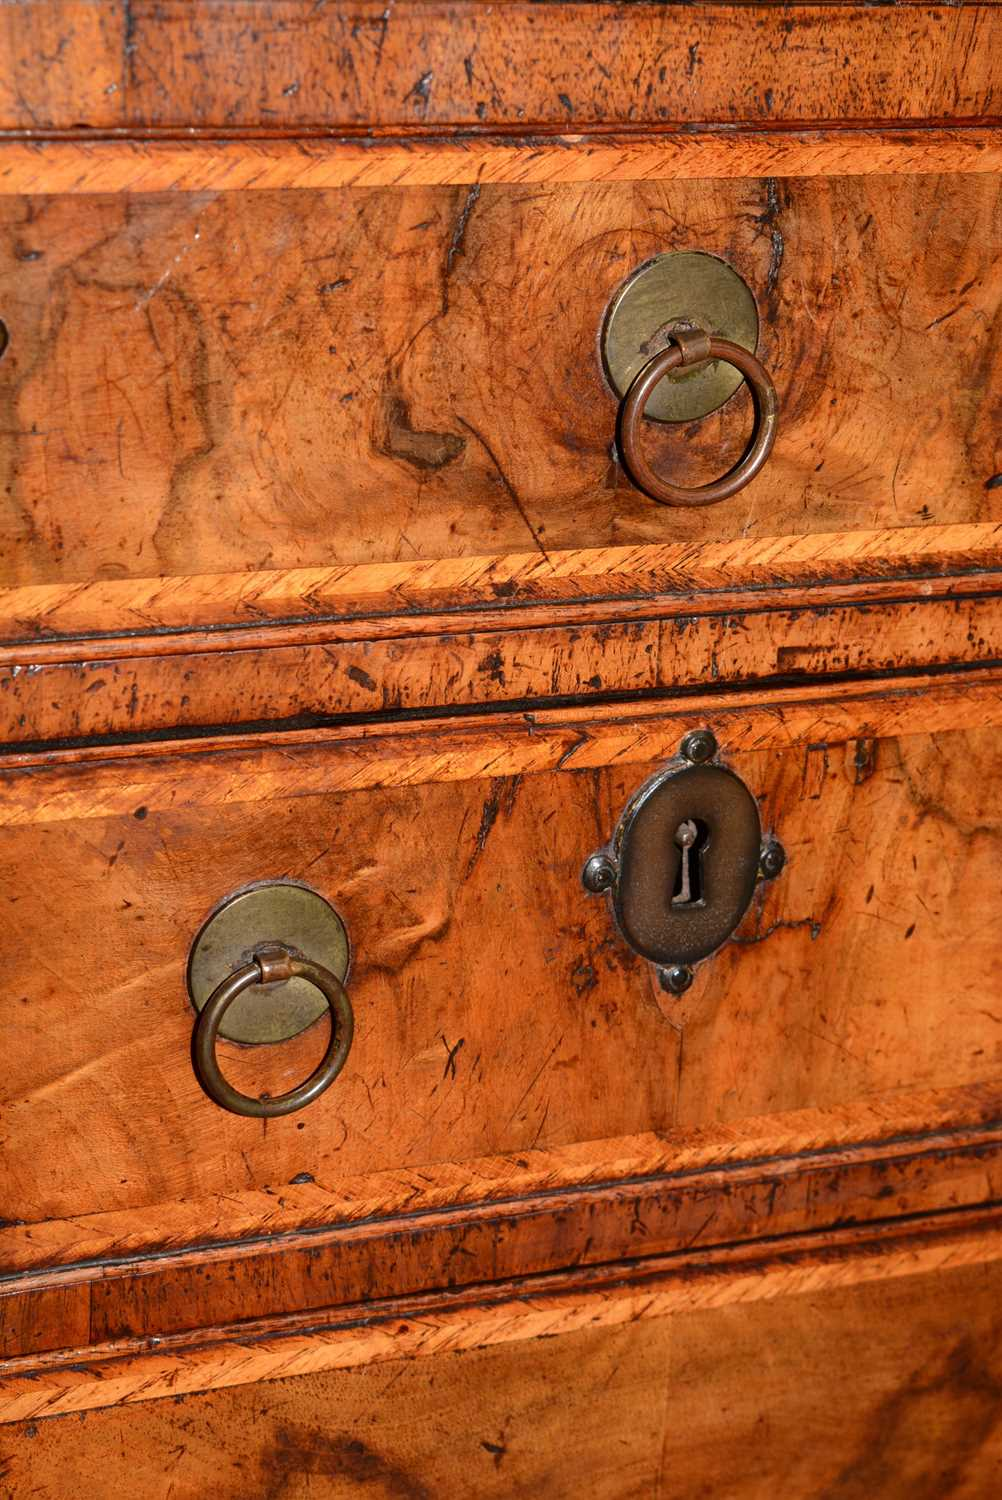 Early 18th Century walnut bachelors chest - Image 31 of 39